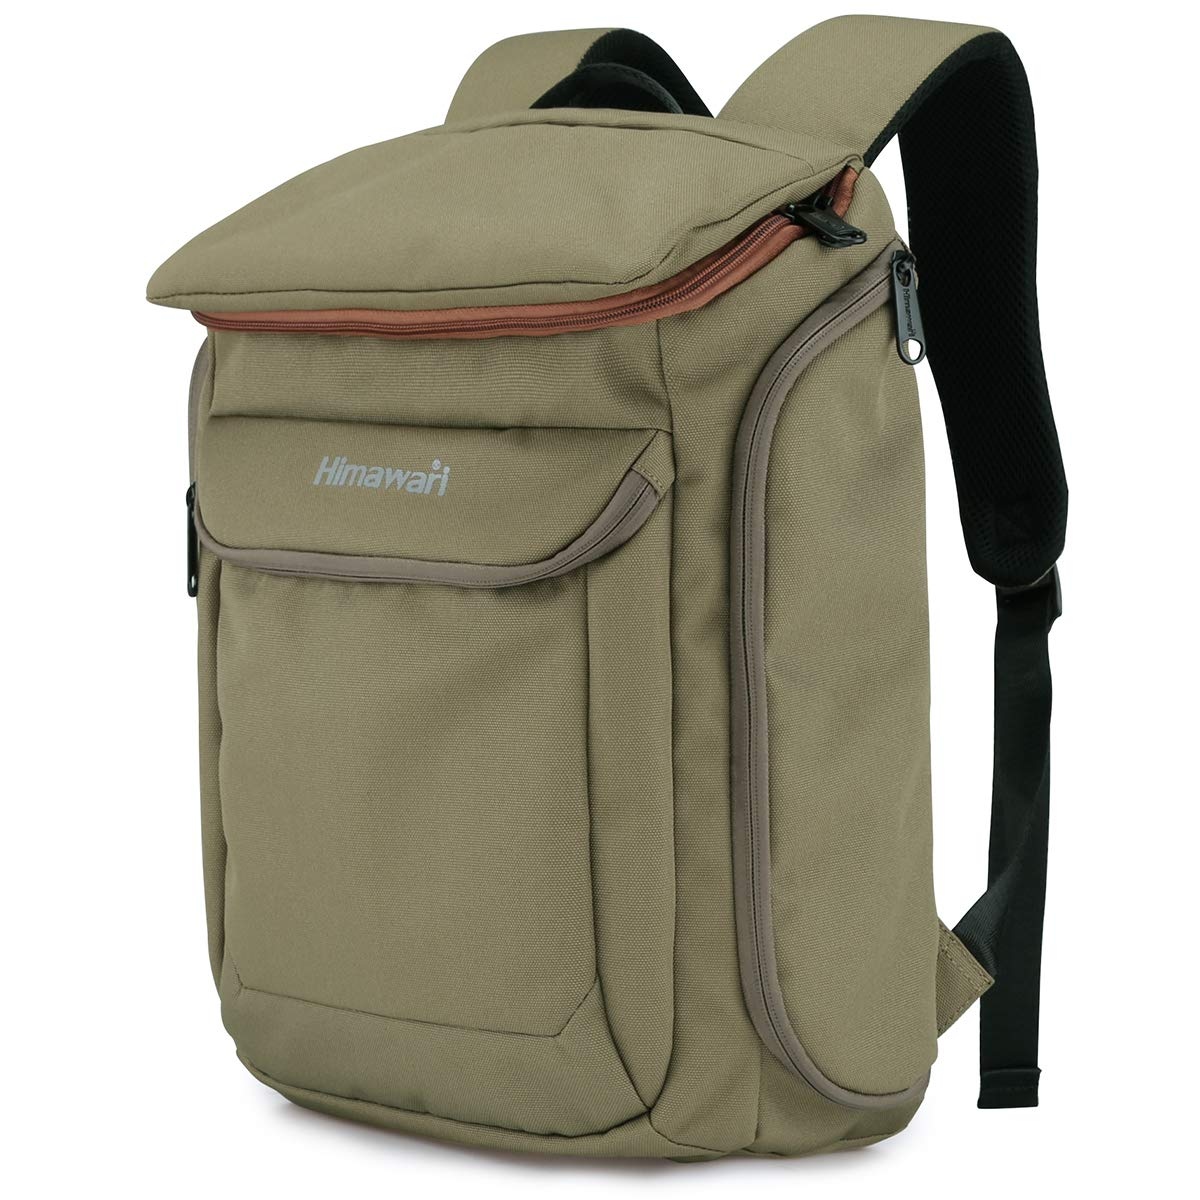 Himawari Travel School Laptop Backpack for Men Women, 15.6 Inch Computer Work Bag for College Students Adults, Casual Daypack Khaki